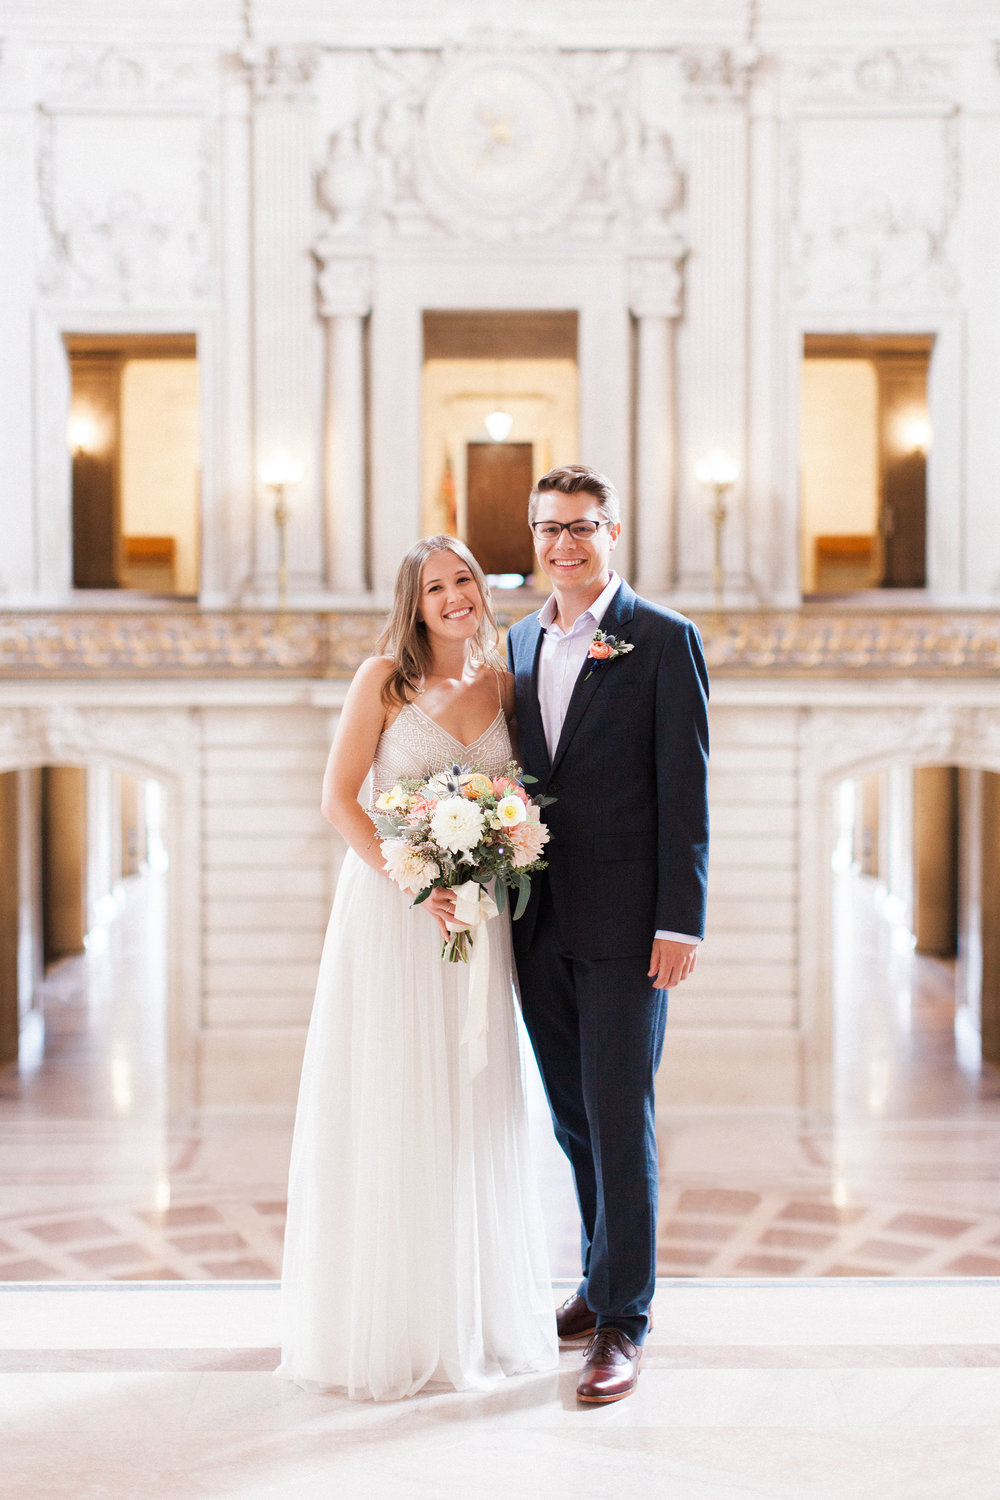 Brandon Sampson Photography. San Francisco City Hall Wedding. Bride and Groom Portrait. Film Photography.